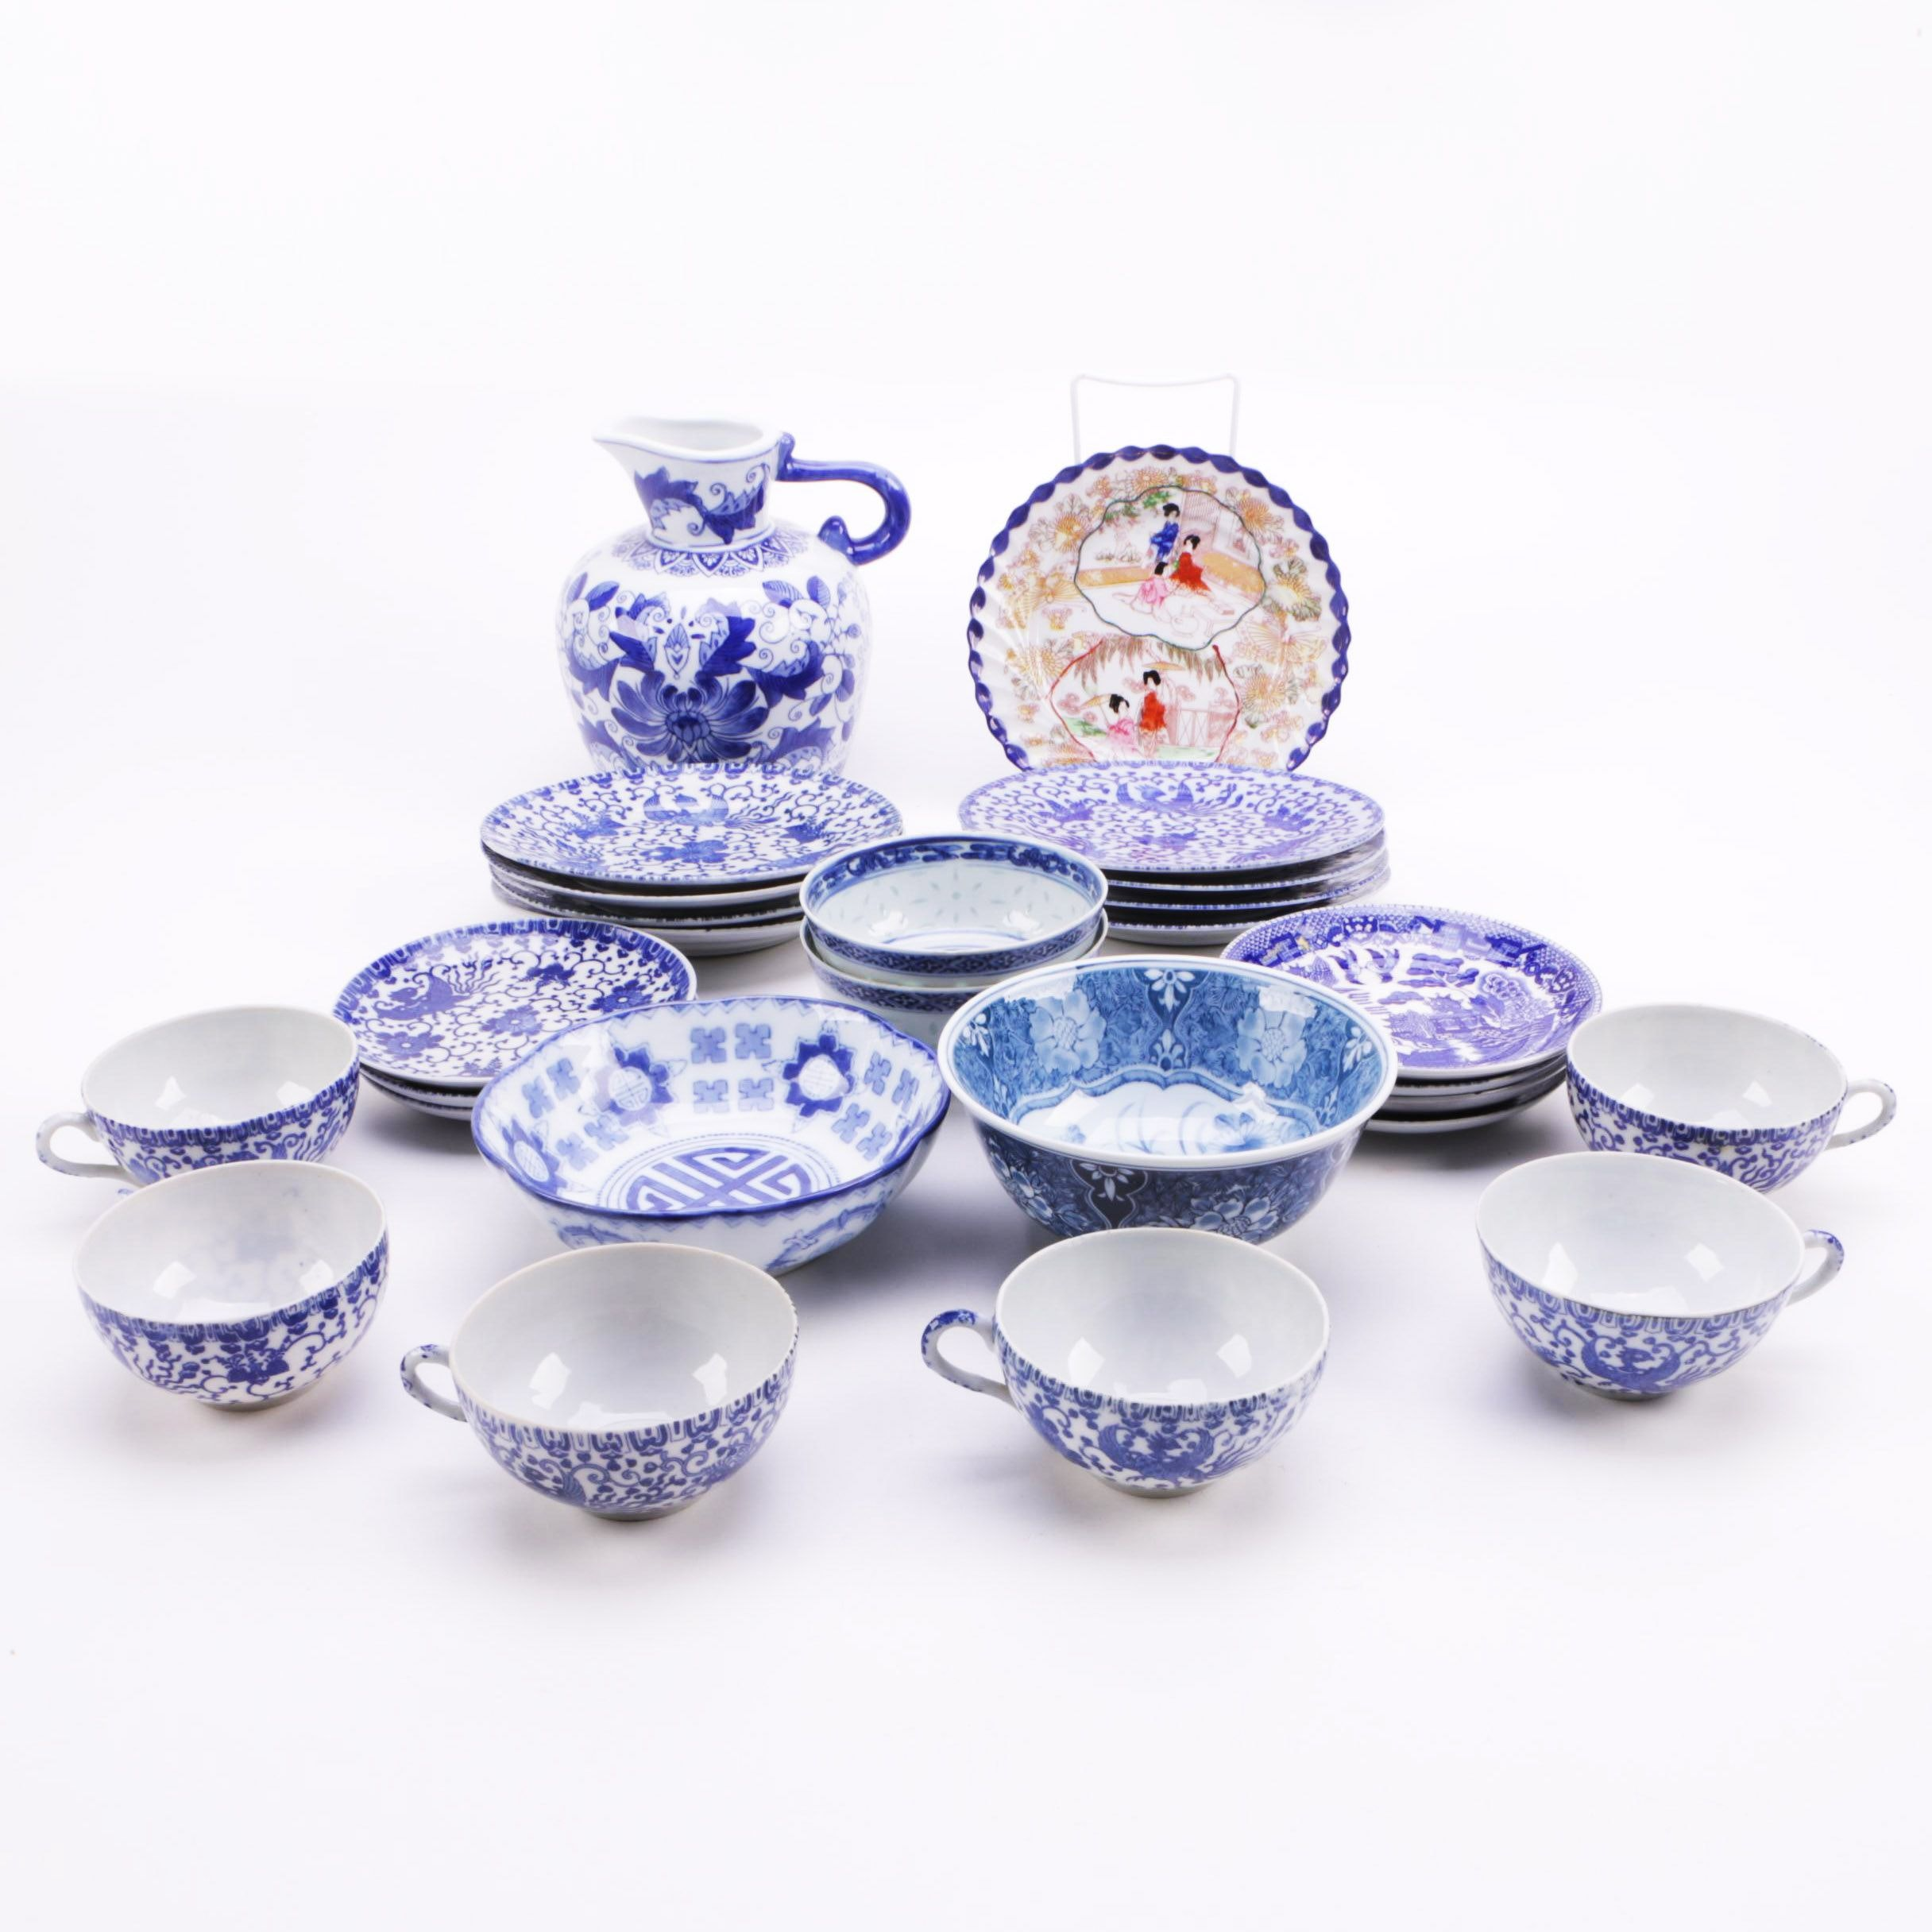 Vintage Chinese and Japanese White and Blue Ceramic Tableware